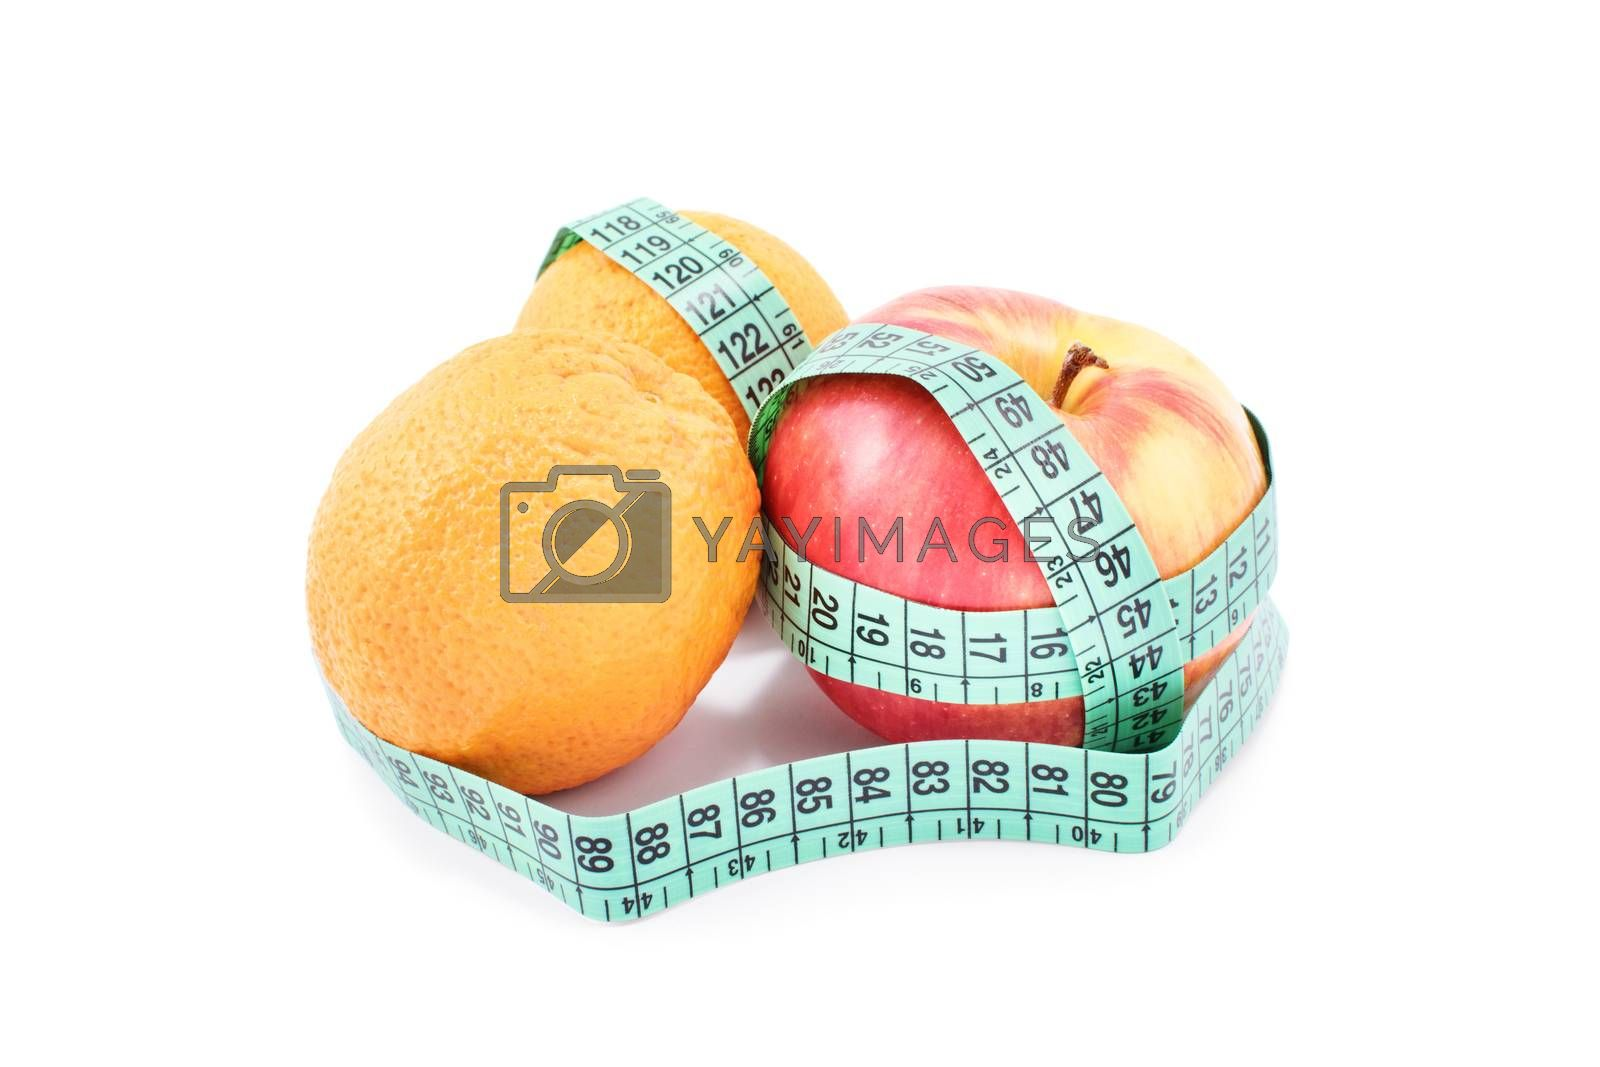 Diet, healthy eating, weight loss concept. Measuring tape wrapped around oranges and an apple, isolated on white background. Symbol of vitamin diet, slim shape and healthy food.